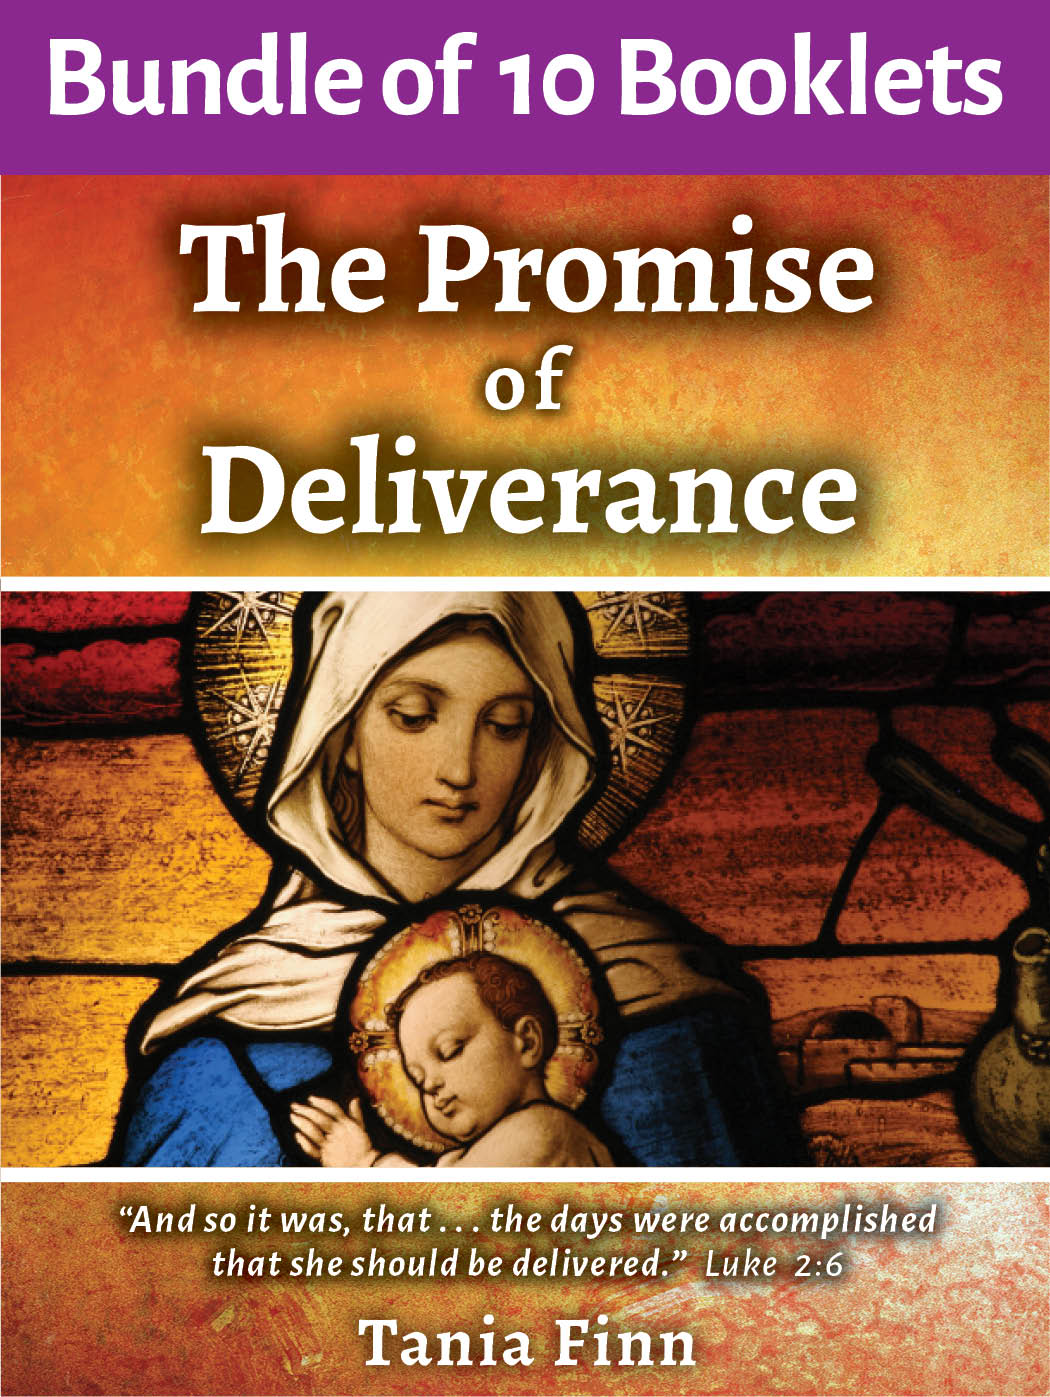 Bundle of 10 – The Promise of Deliverance – Physical Booklet (2020)